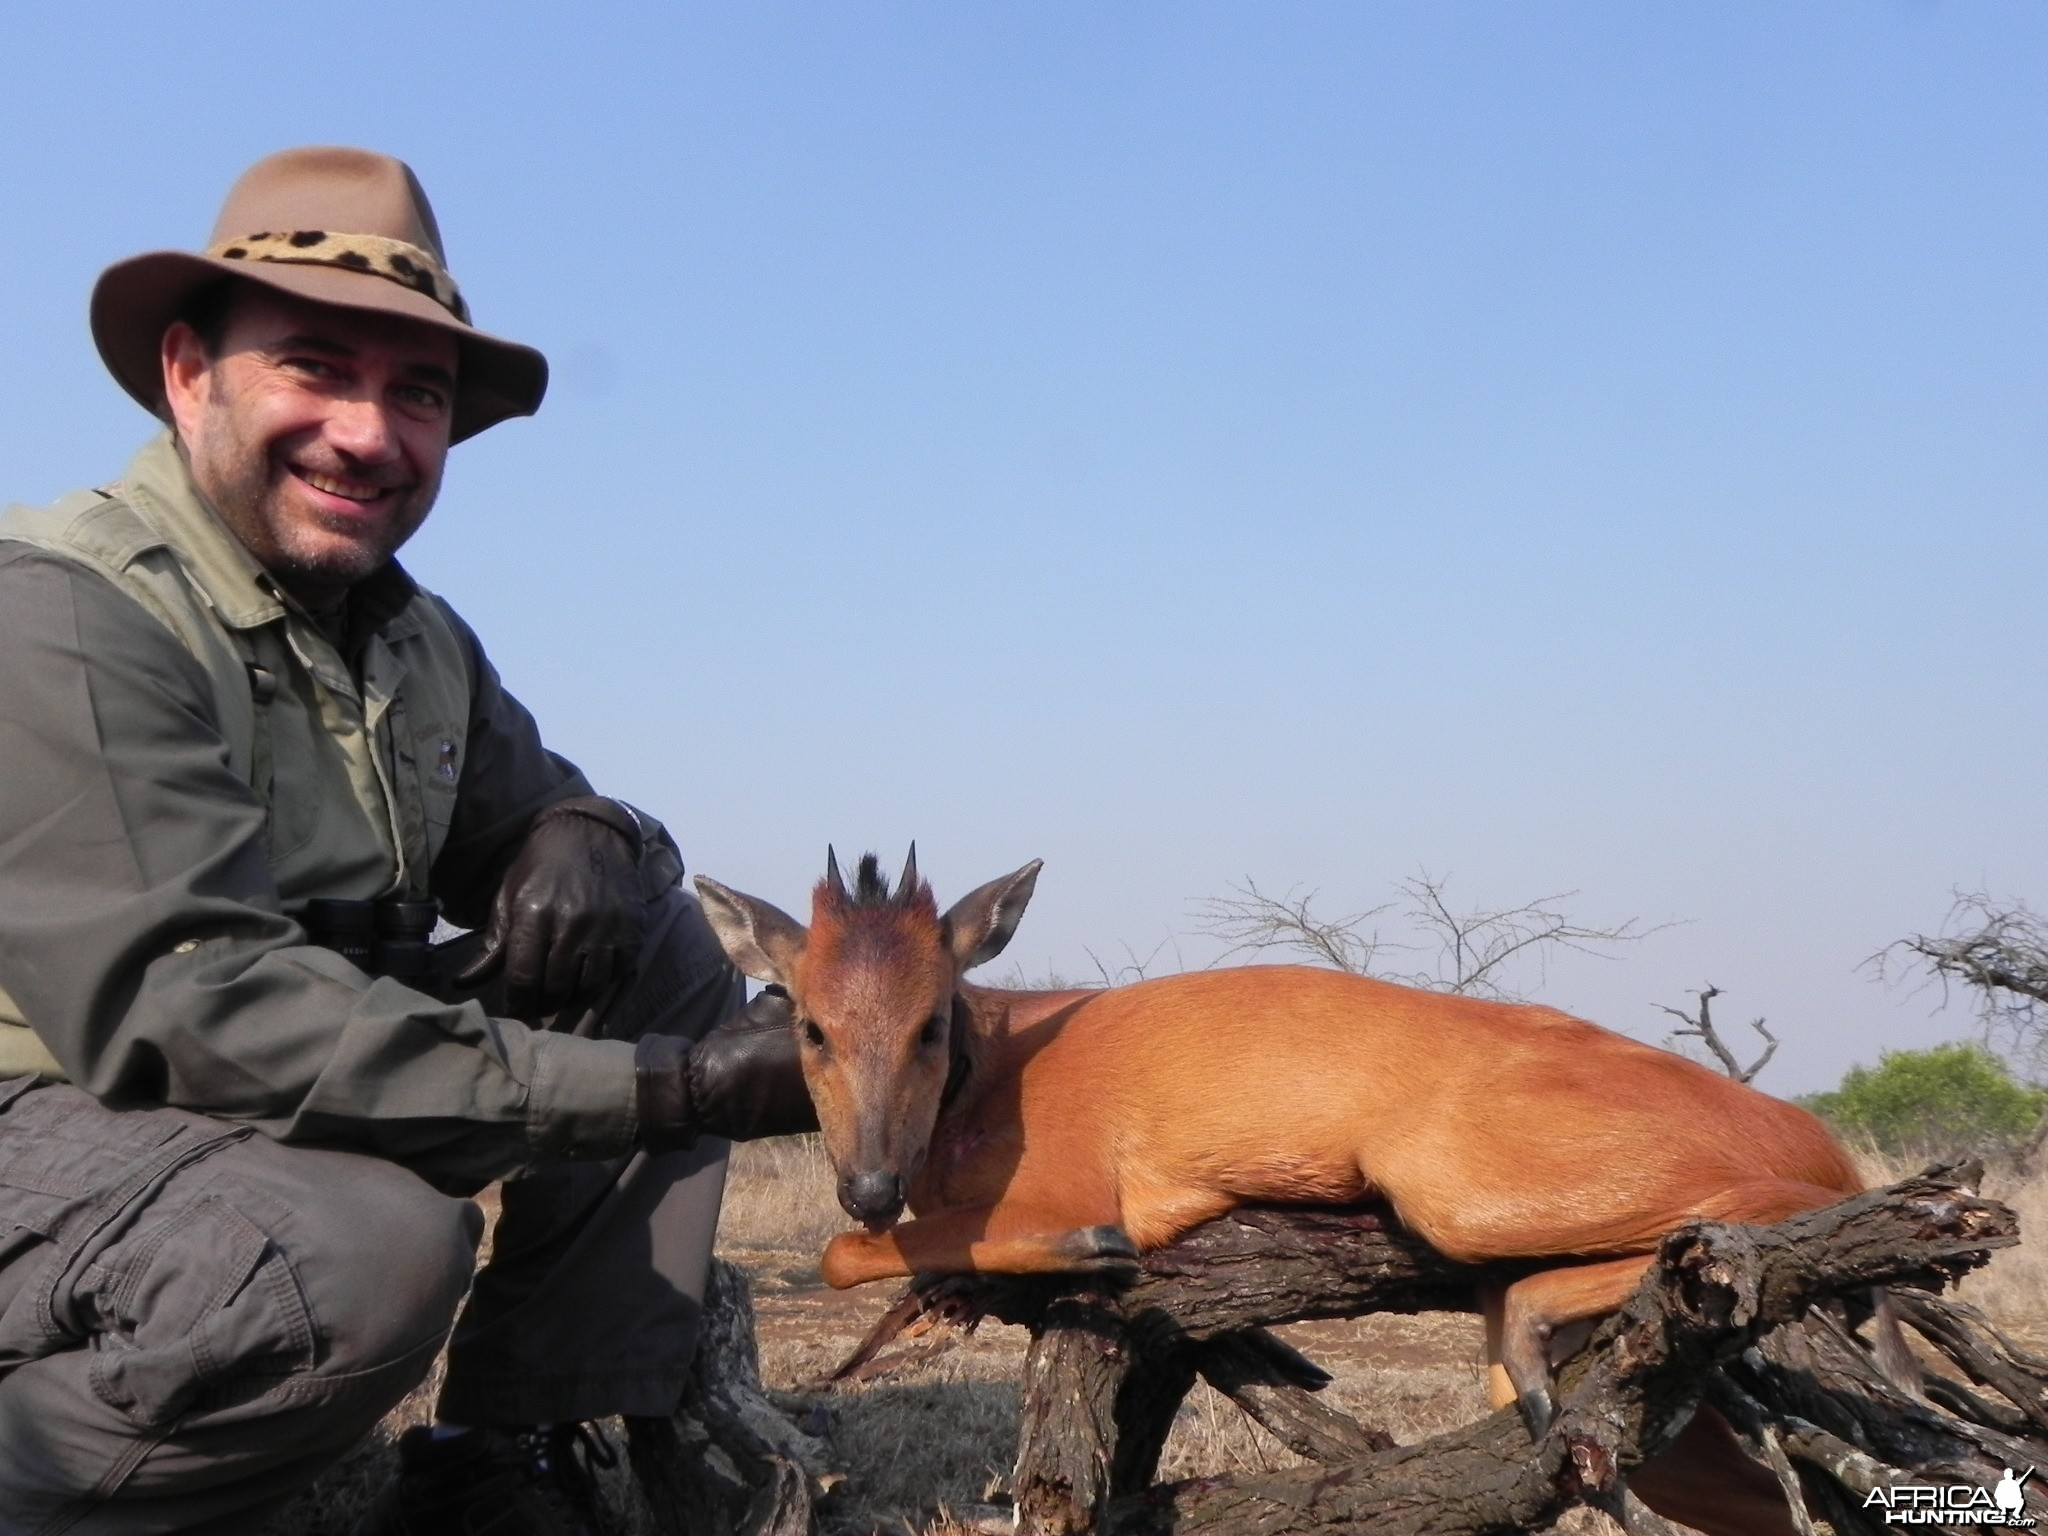 Hunting Red Duiker with Wintershoek Johnny Vivier Safaris in SA